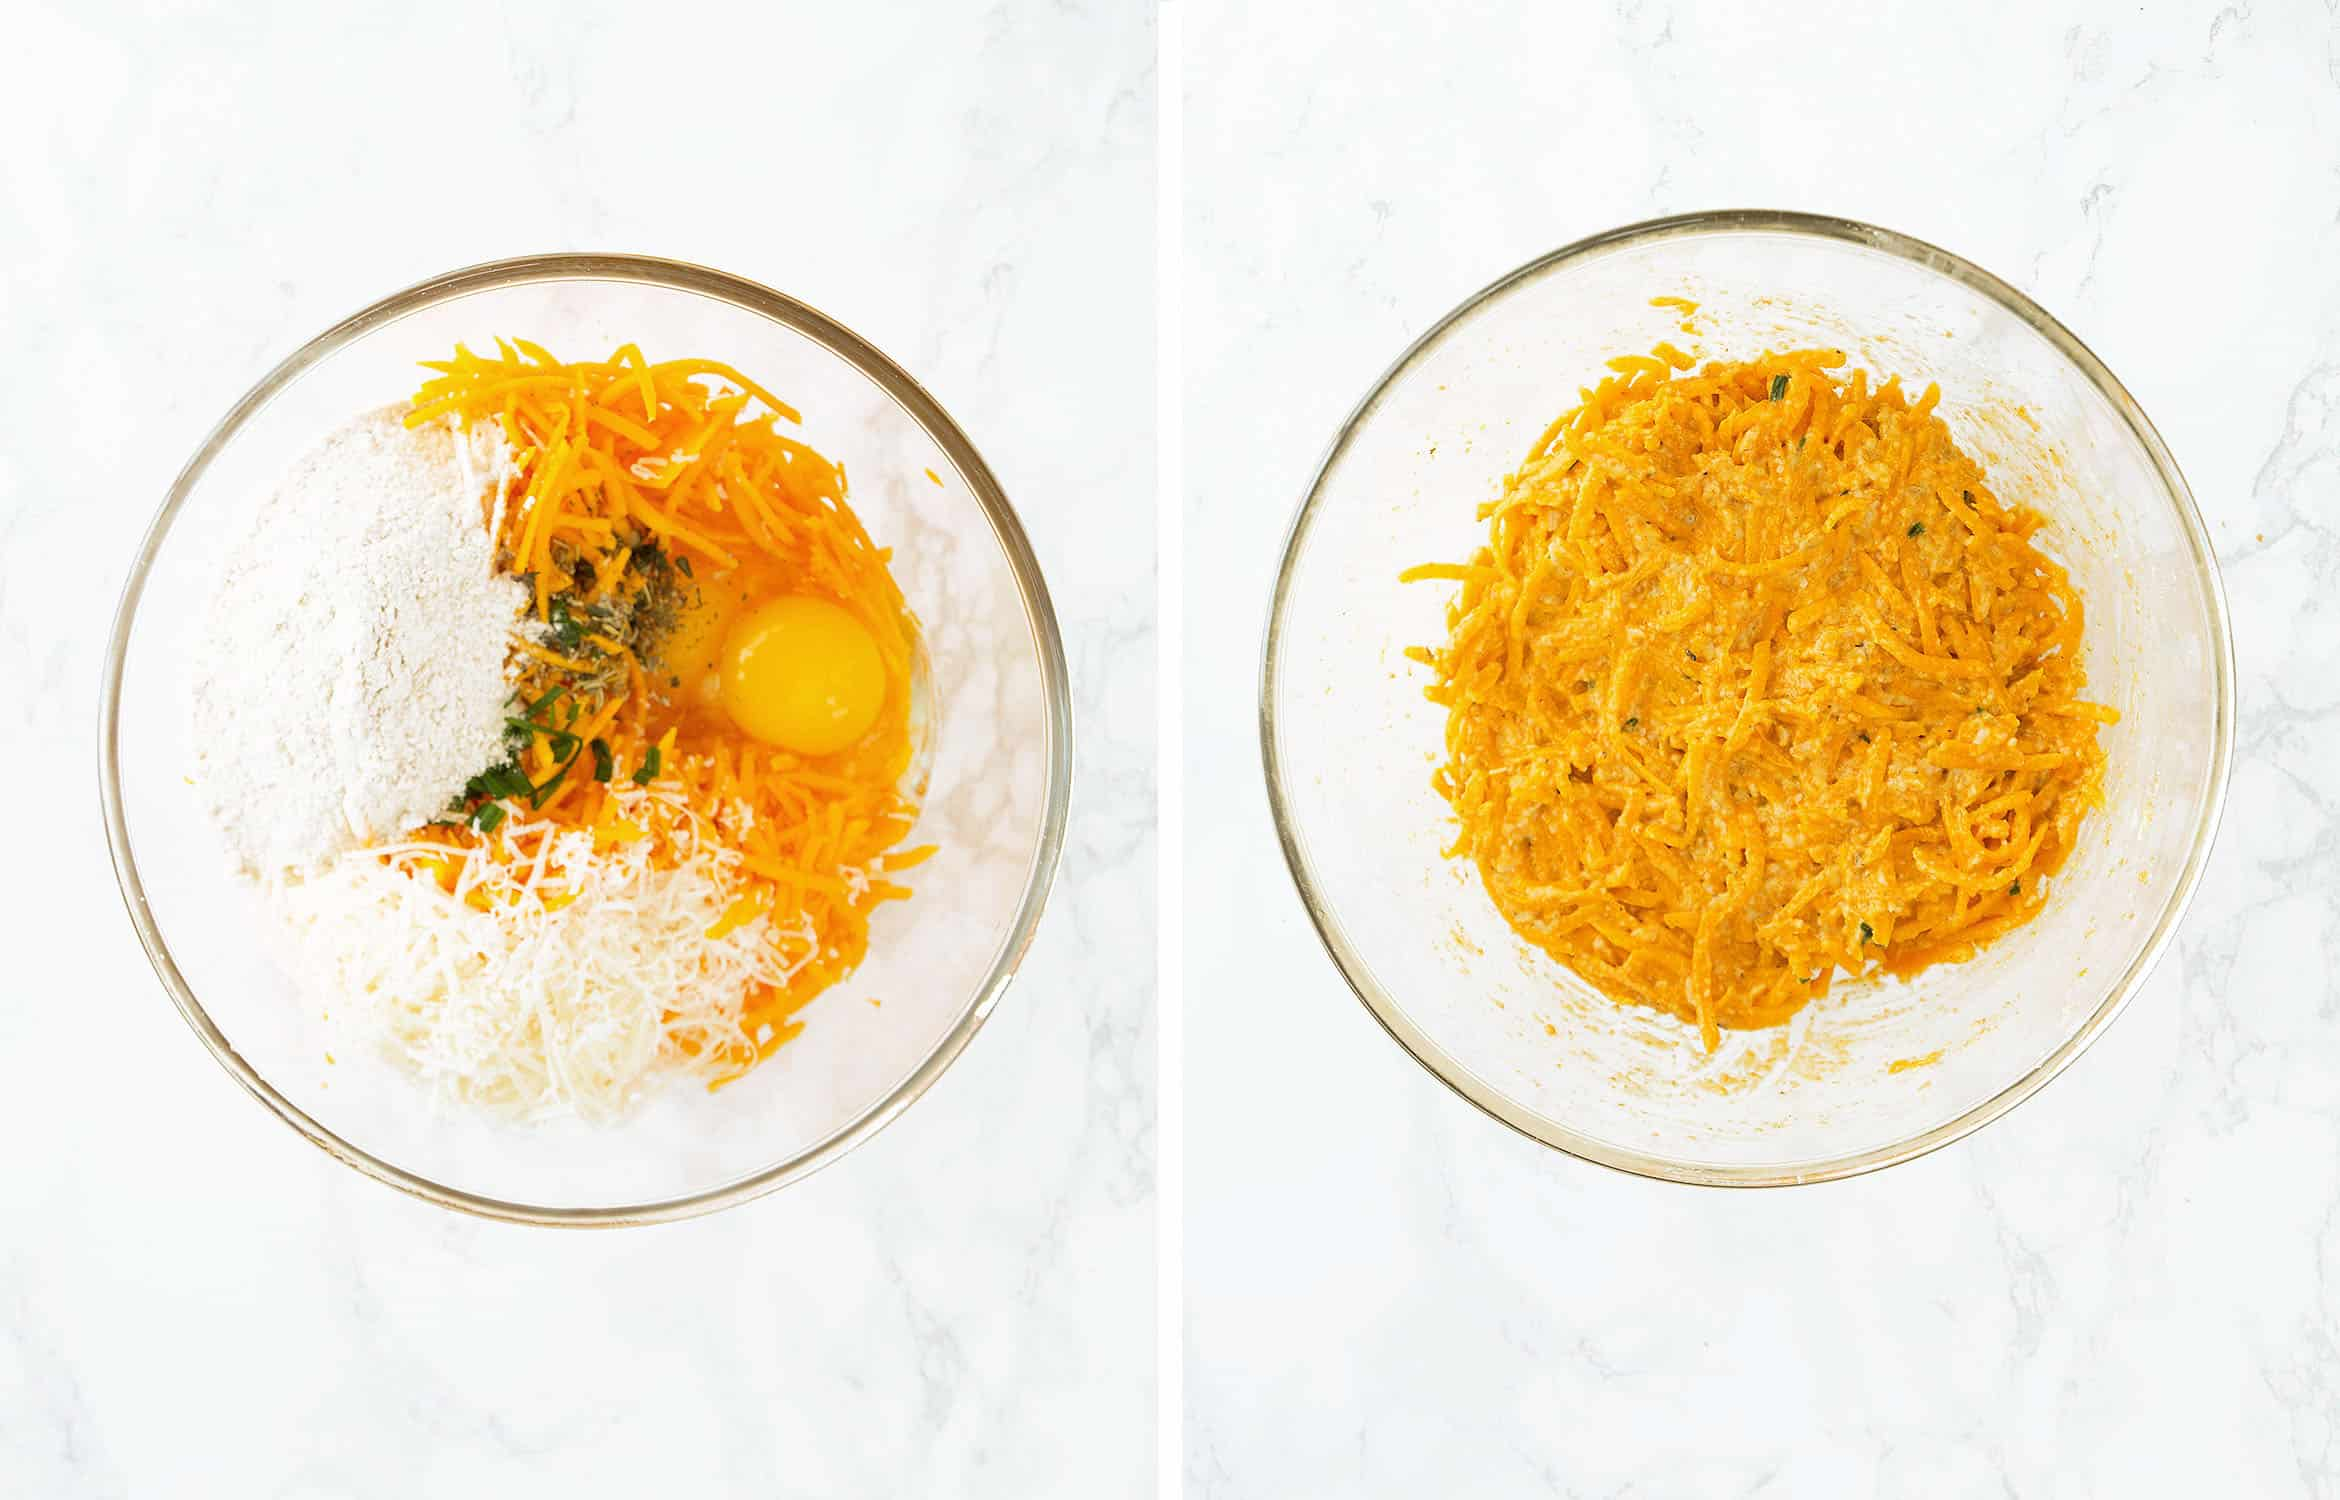 The ingredients for the butternut squash fritters are in a glass container over a white background.